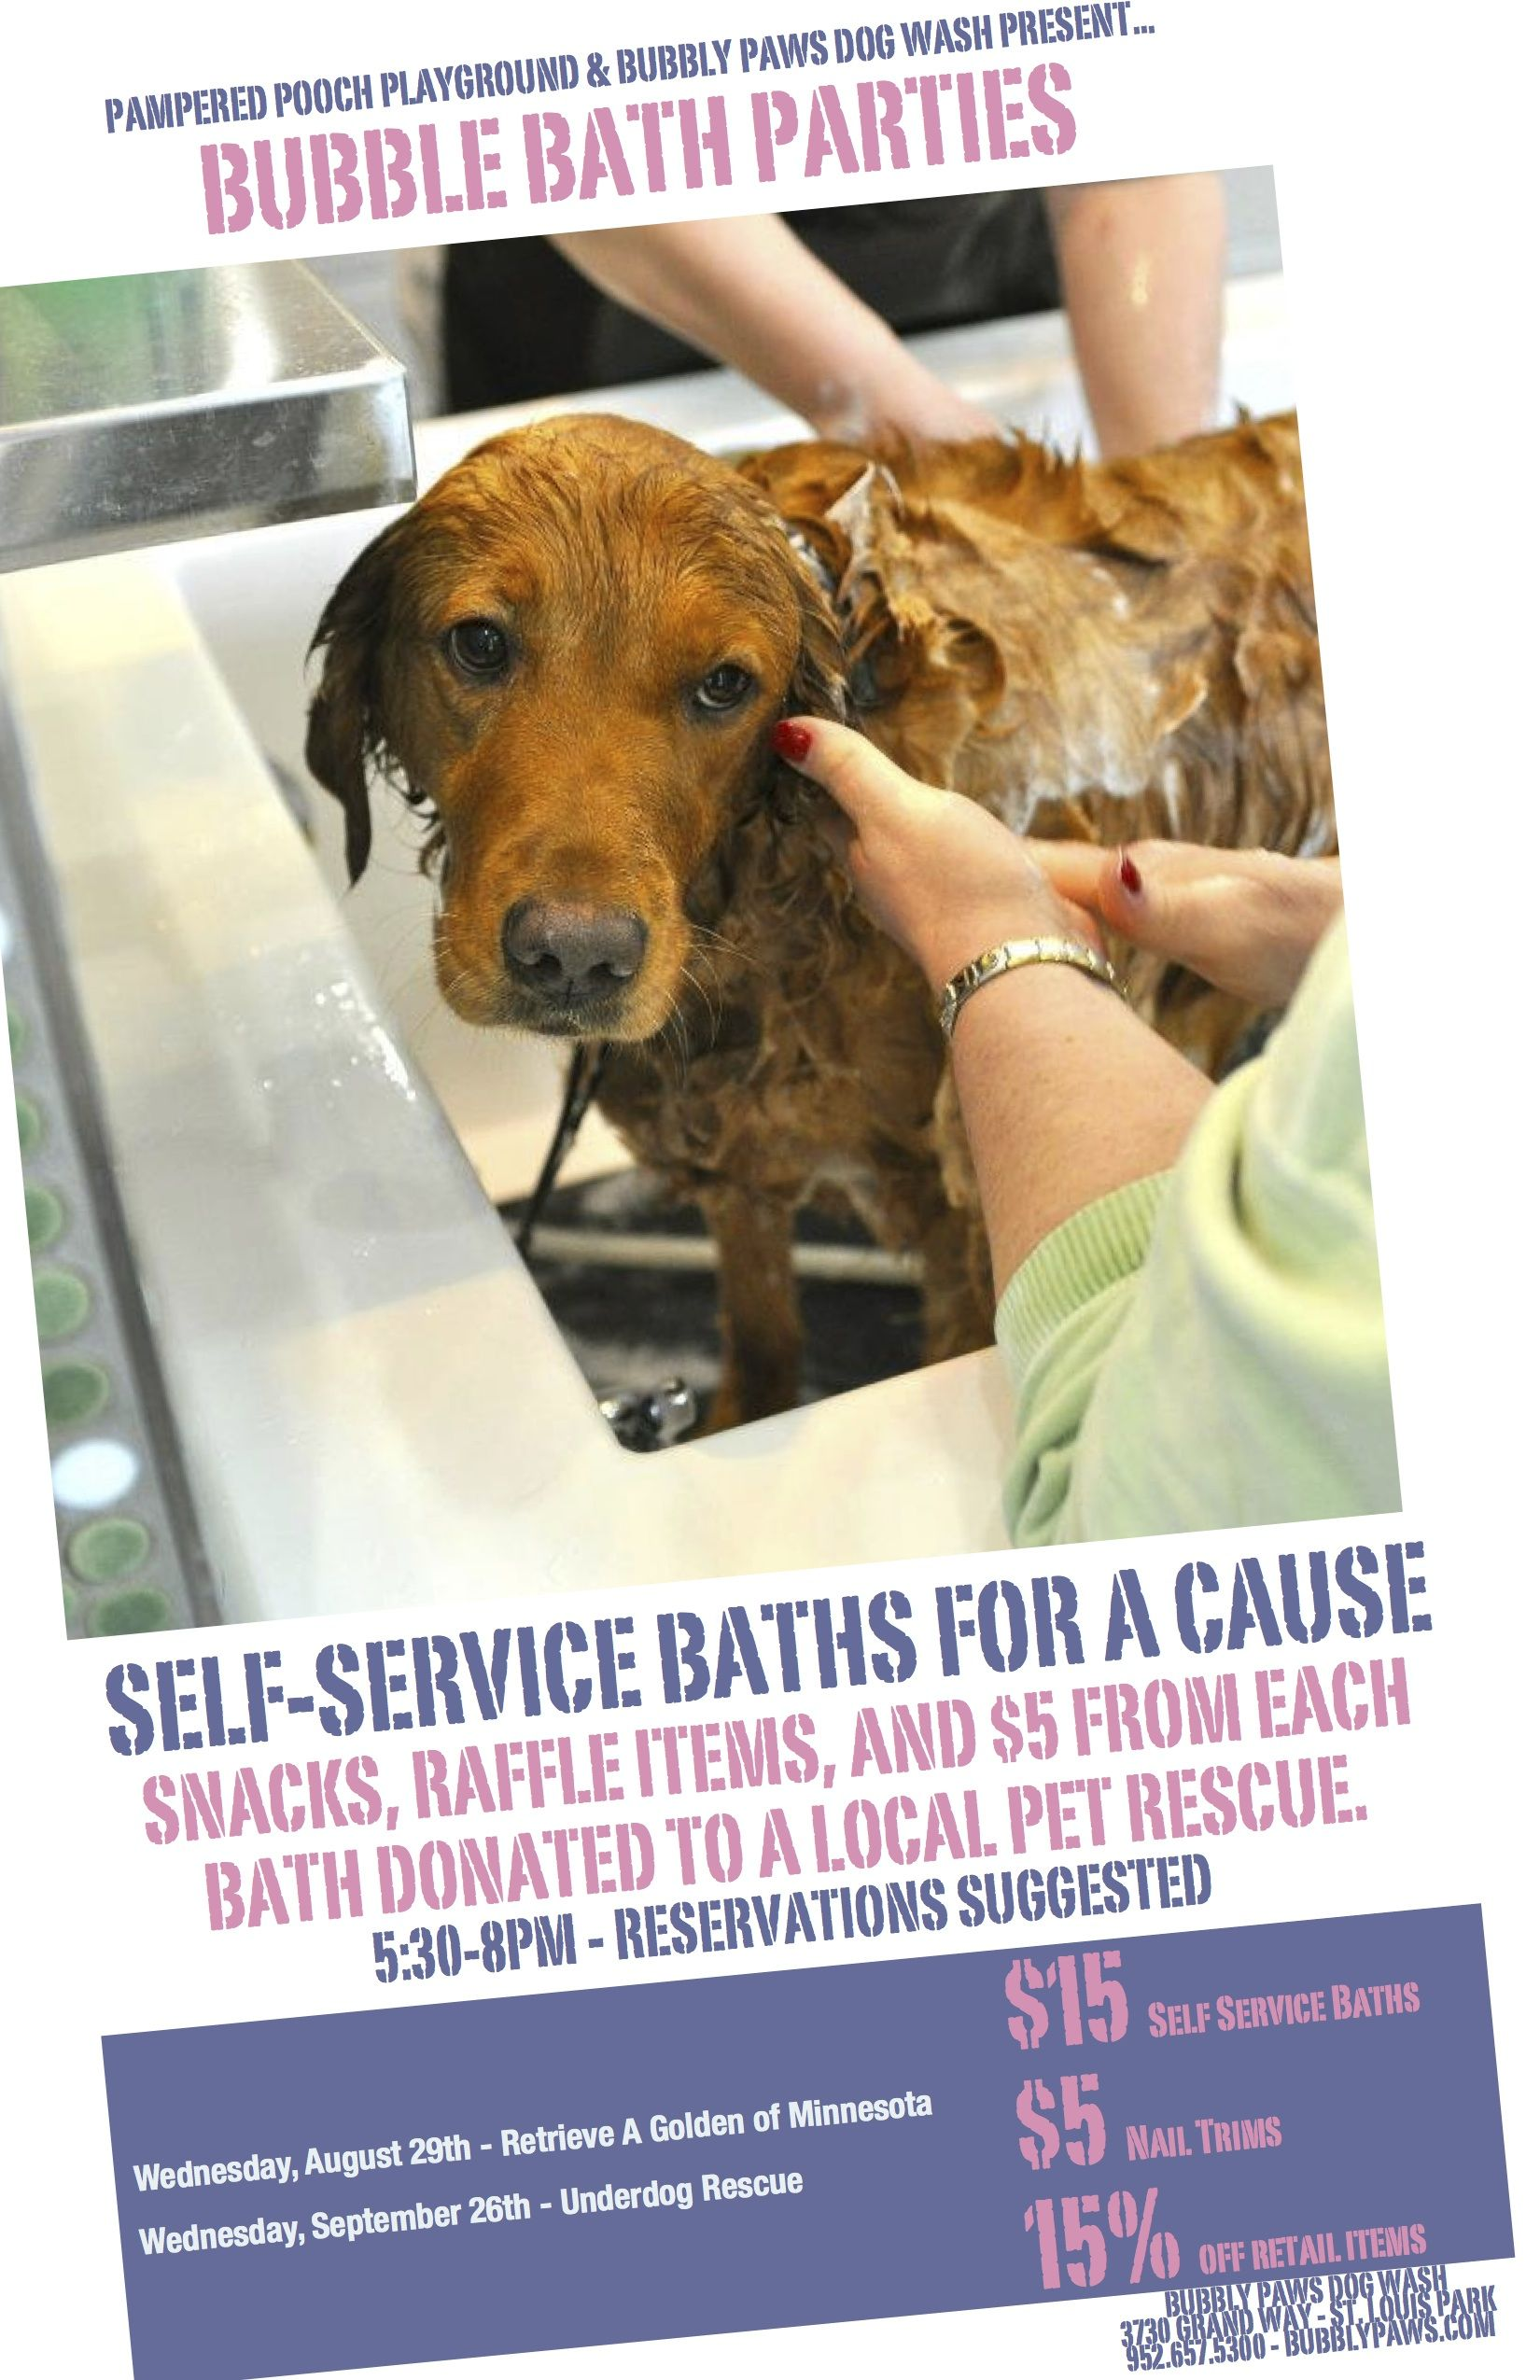 Bubbly paws dog wash minneapolis mn guess who this is in the bubbly paws dog wash minneapolis mn guess who this is in the poster solutioingenieria Gallery